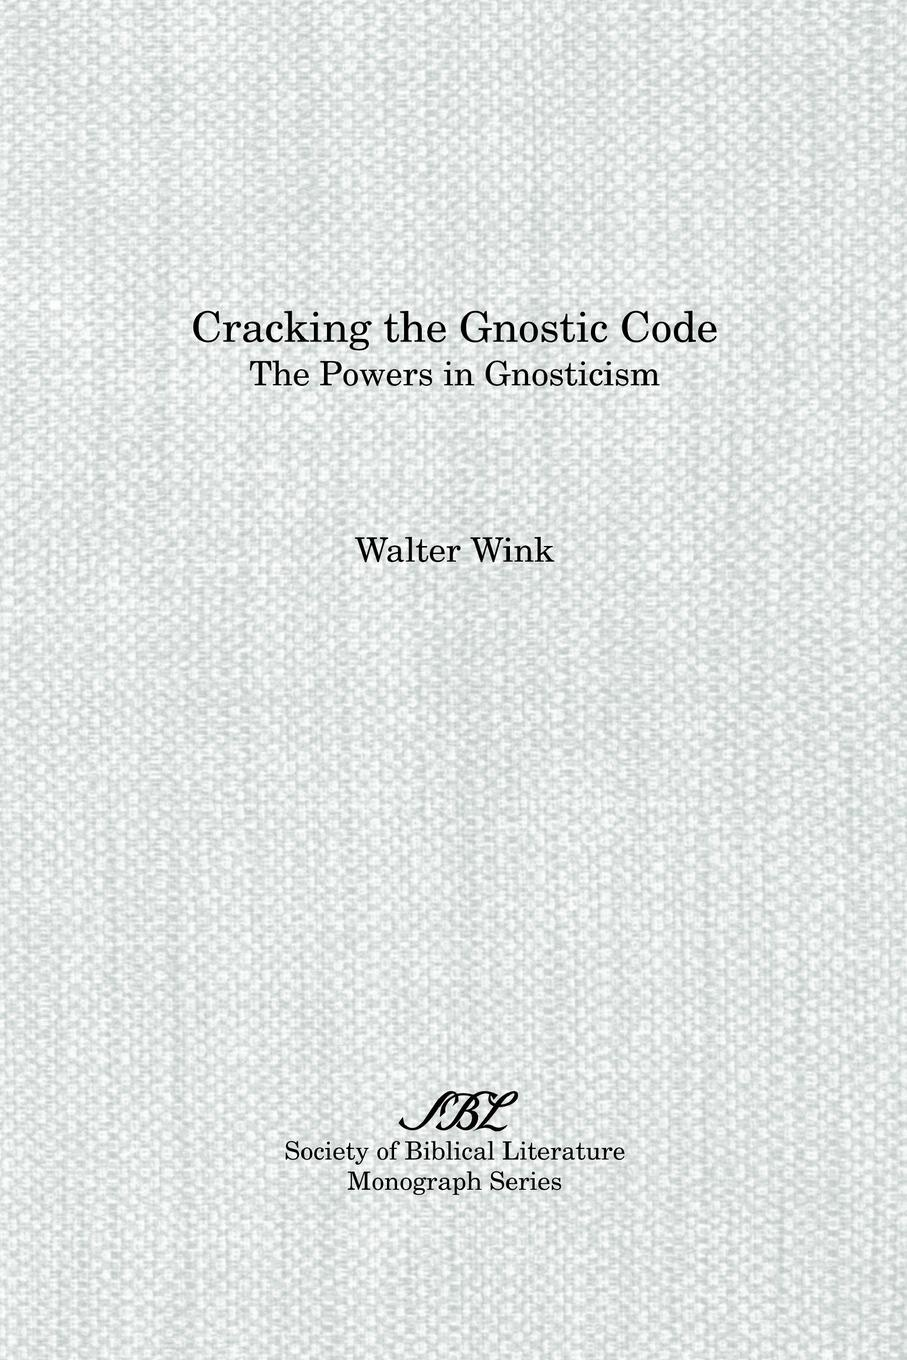 Walter Wink Cracking the Gnostic Code. The Powers of Gnosticism wink подвесная люстра wink n2748 5